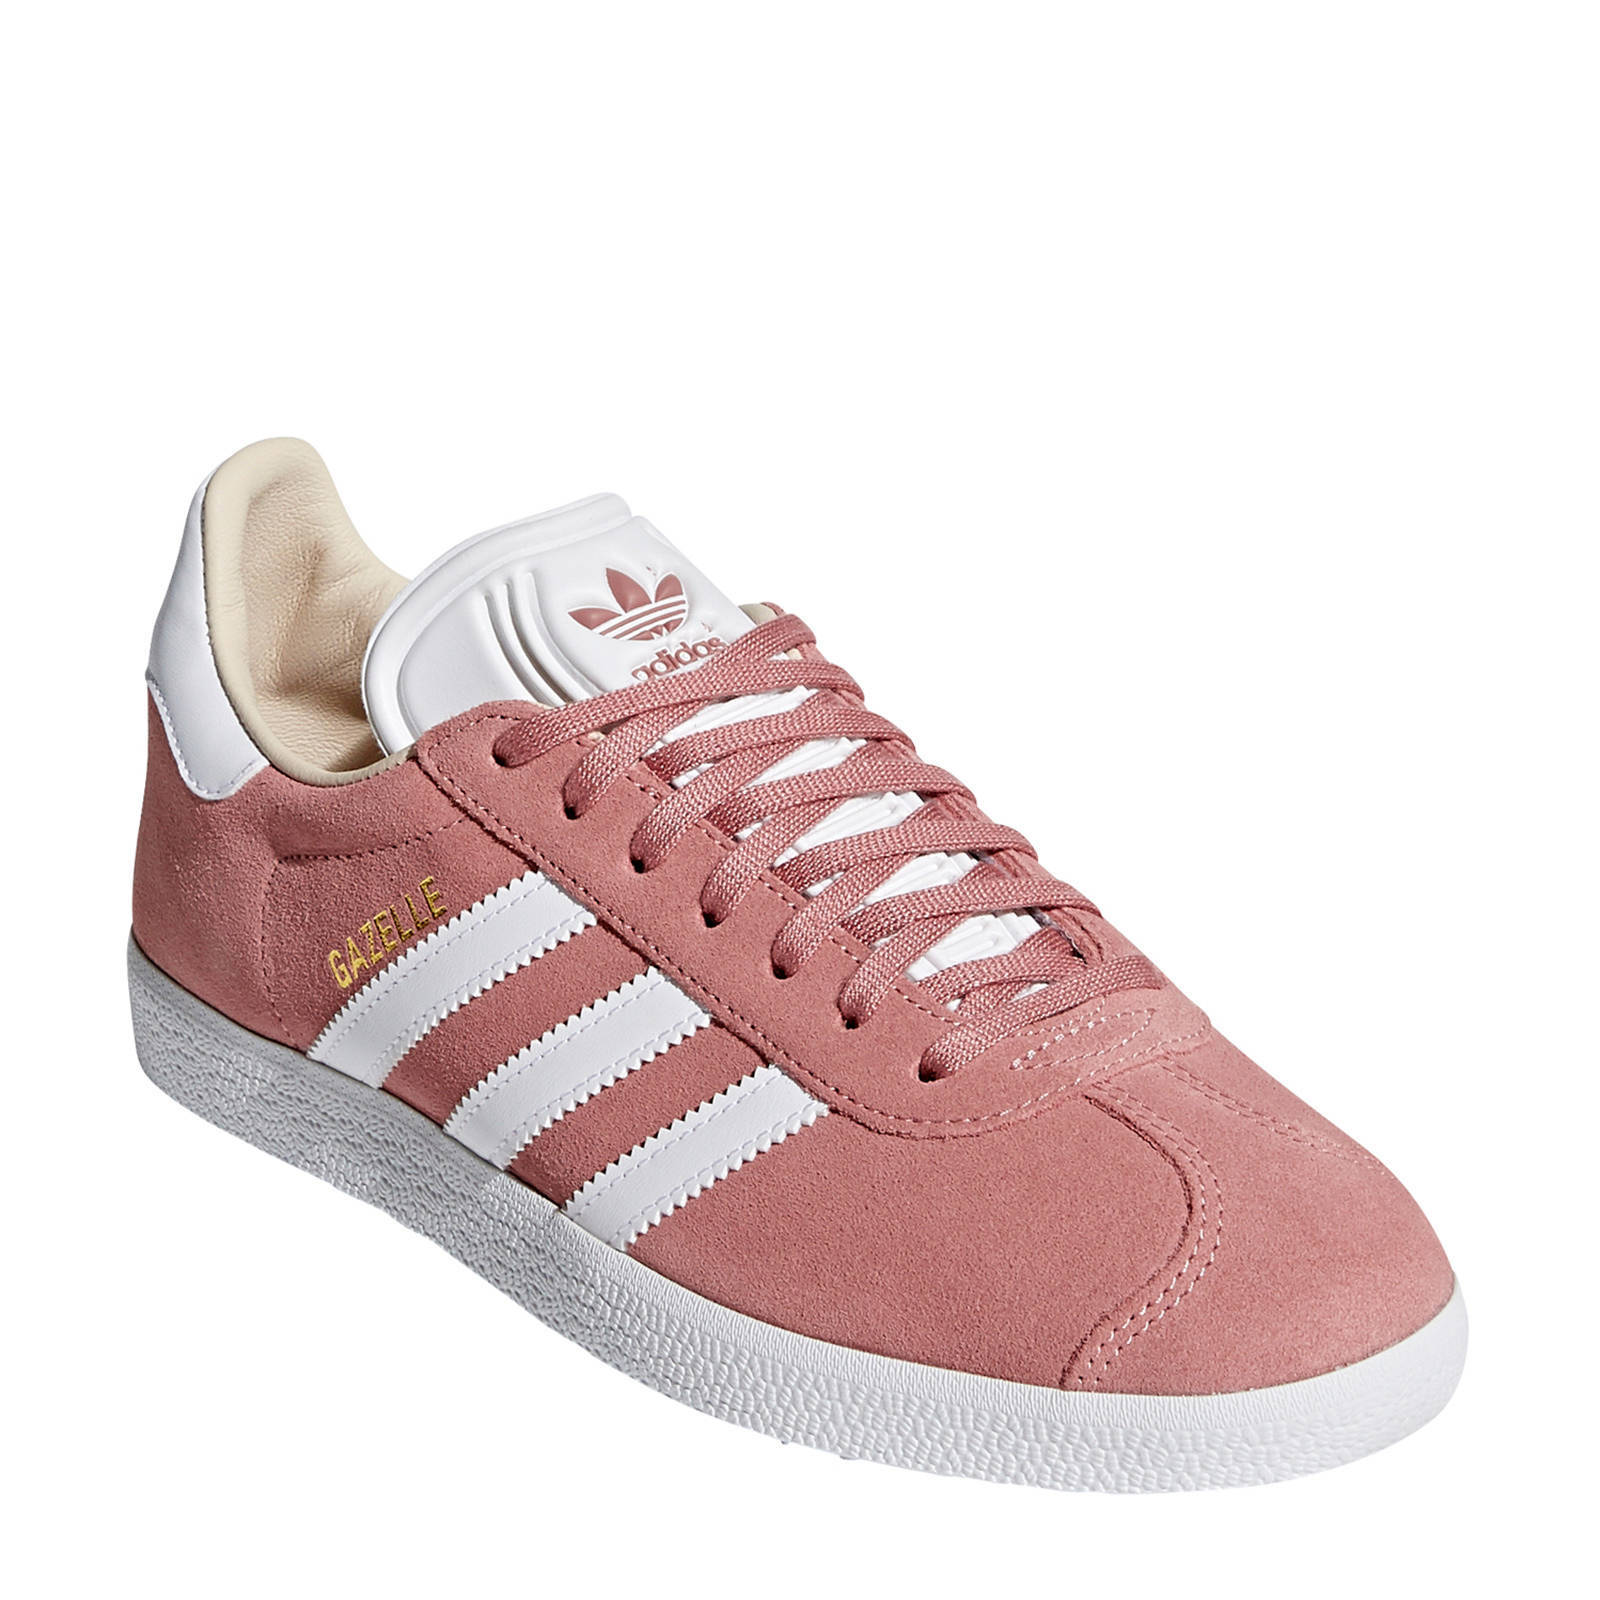 adidas Originals Gazelle sneakers oudroze/wit | wehkamp